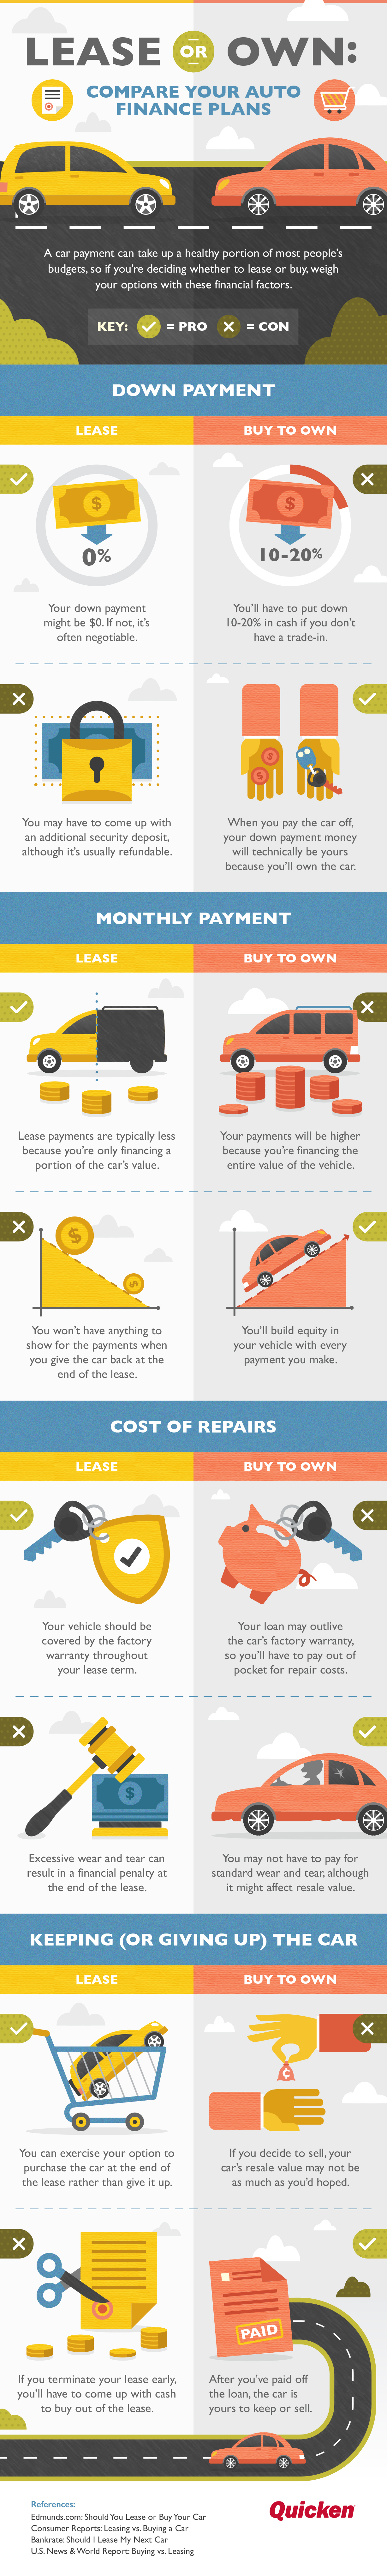 Lease or Own: Compare Your Auto Finance Plans [Infographic]